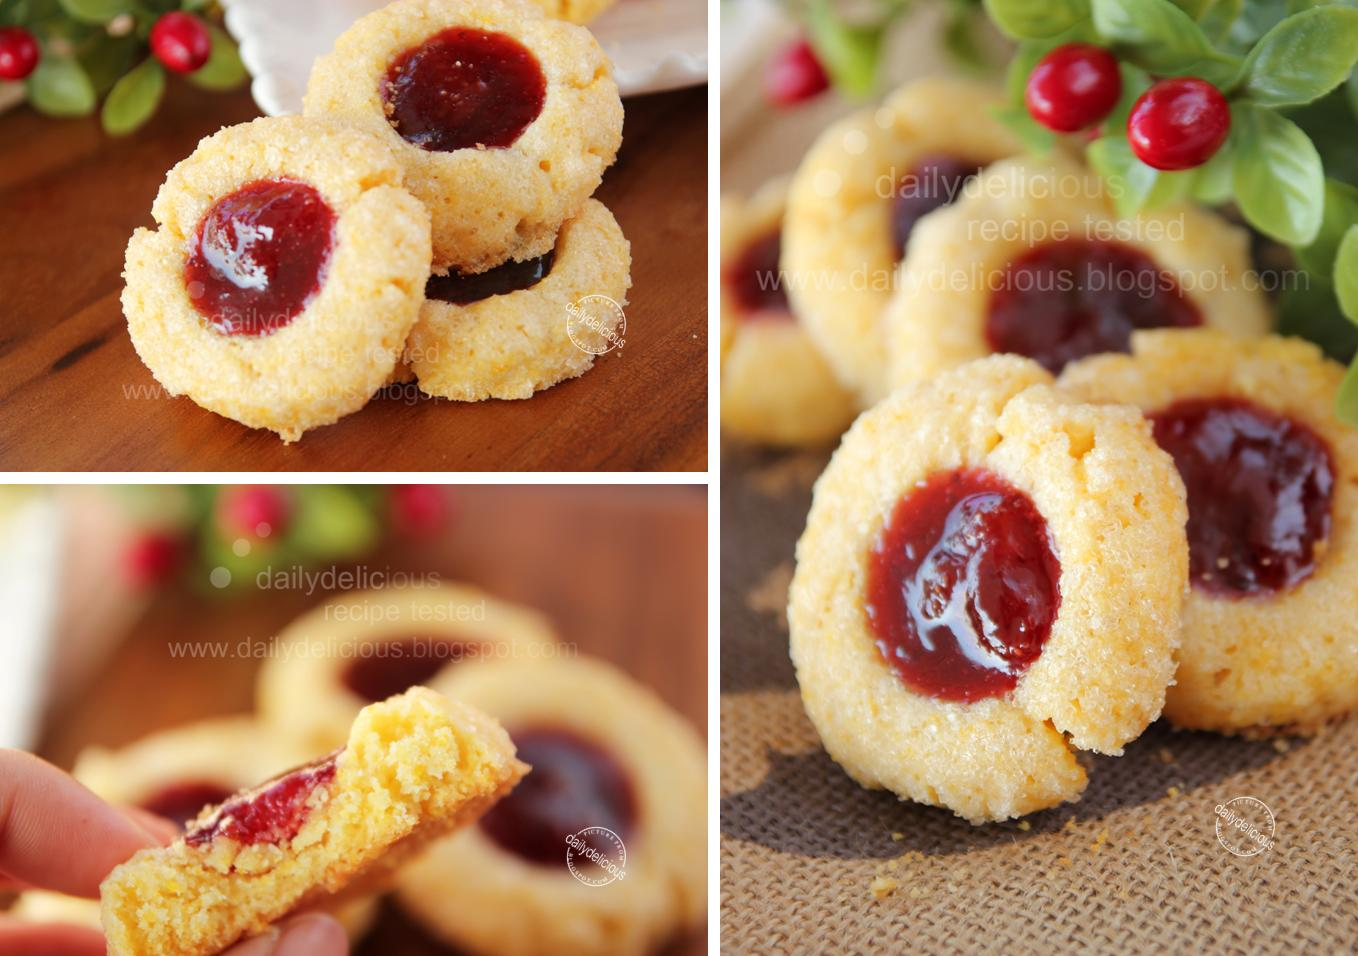 dailydelicious: Cornmeal Thumbprints Cookies: Crunchy delicious, need ...